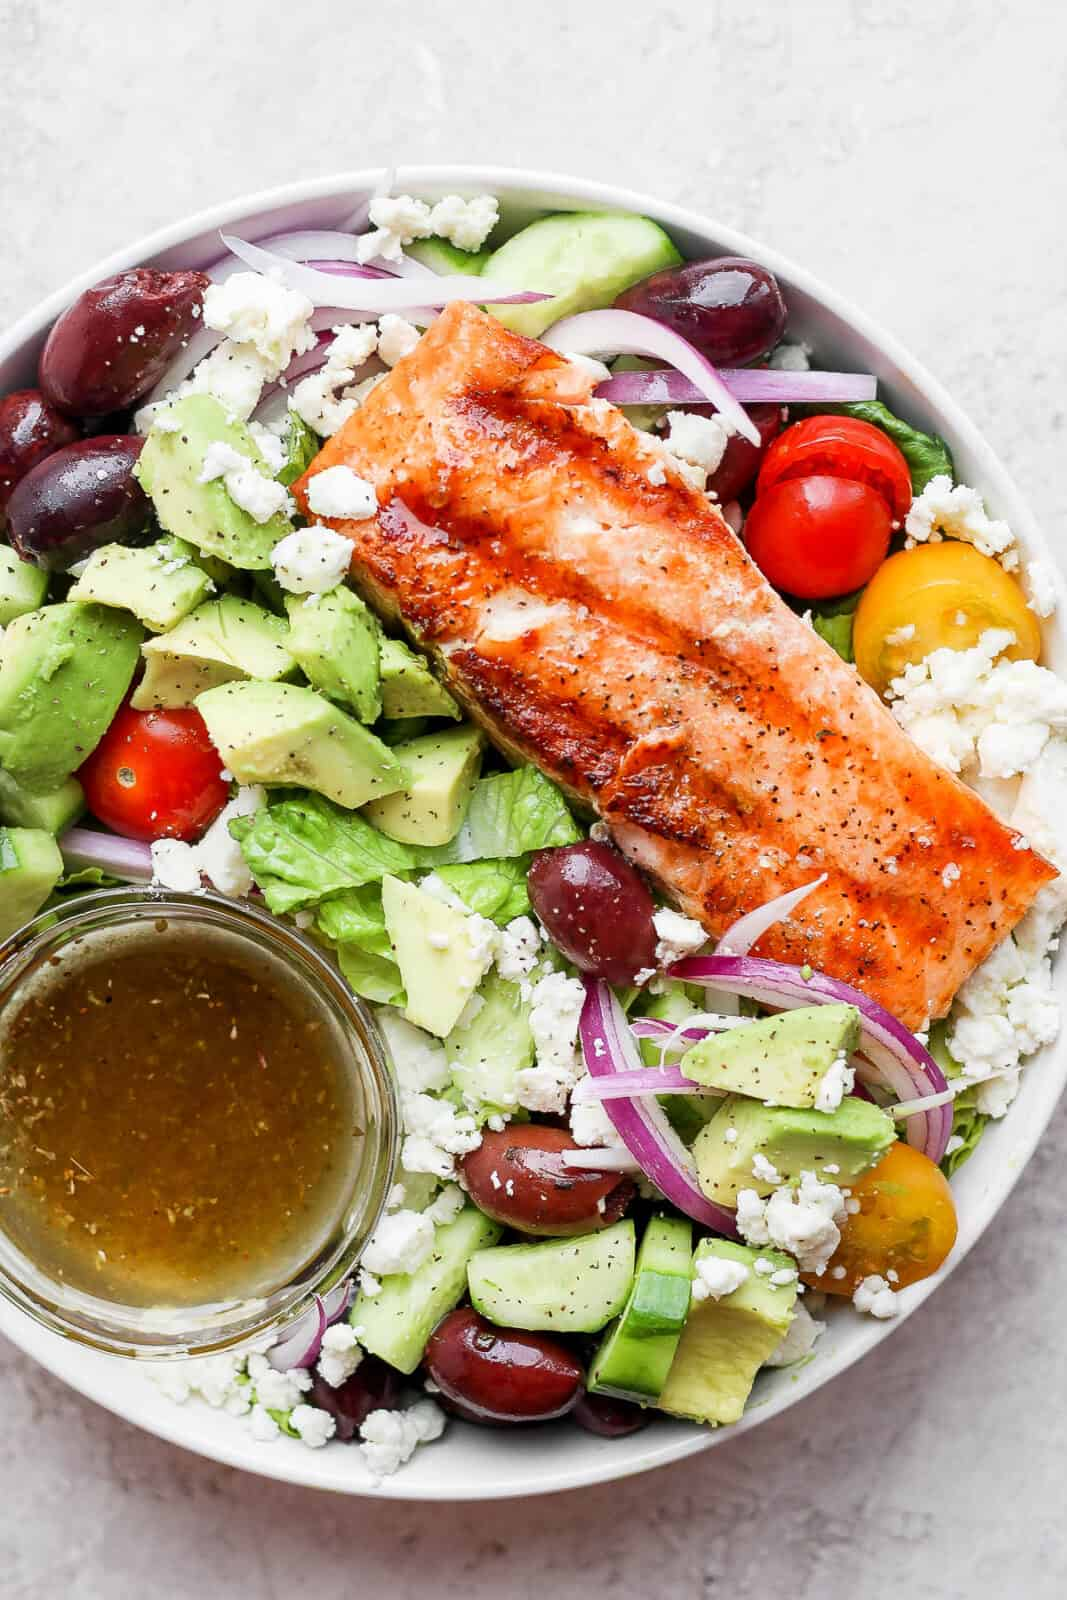 Bowl of grilled salmon salad with avocado, olives and feta cheese.